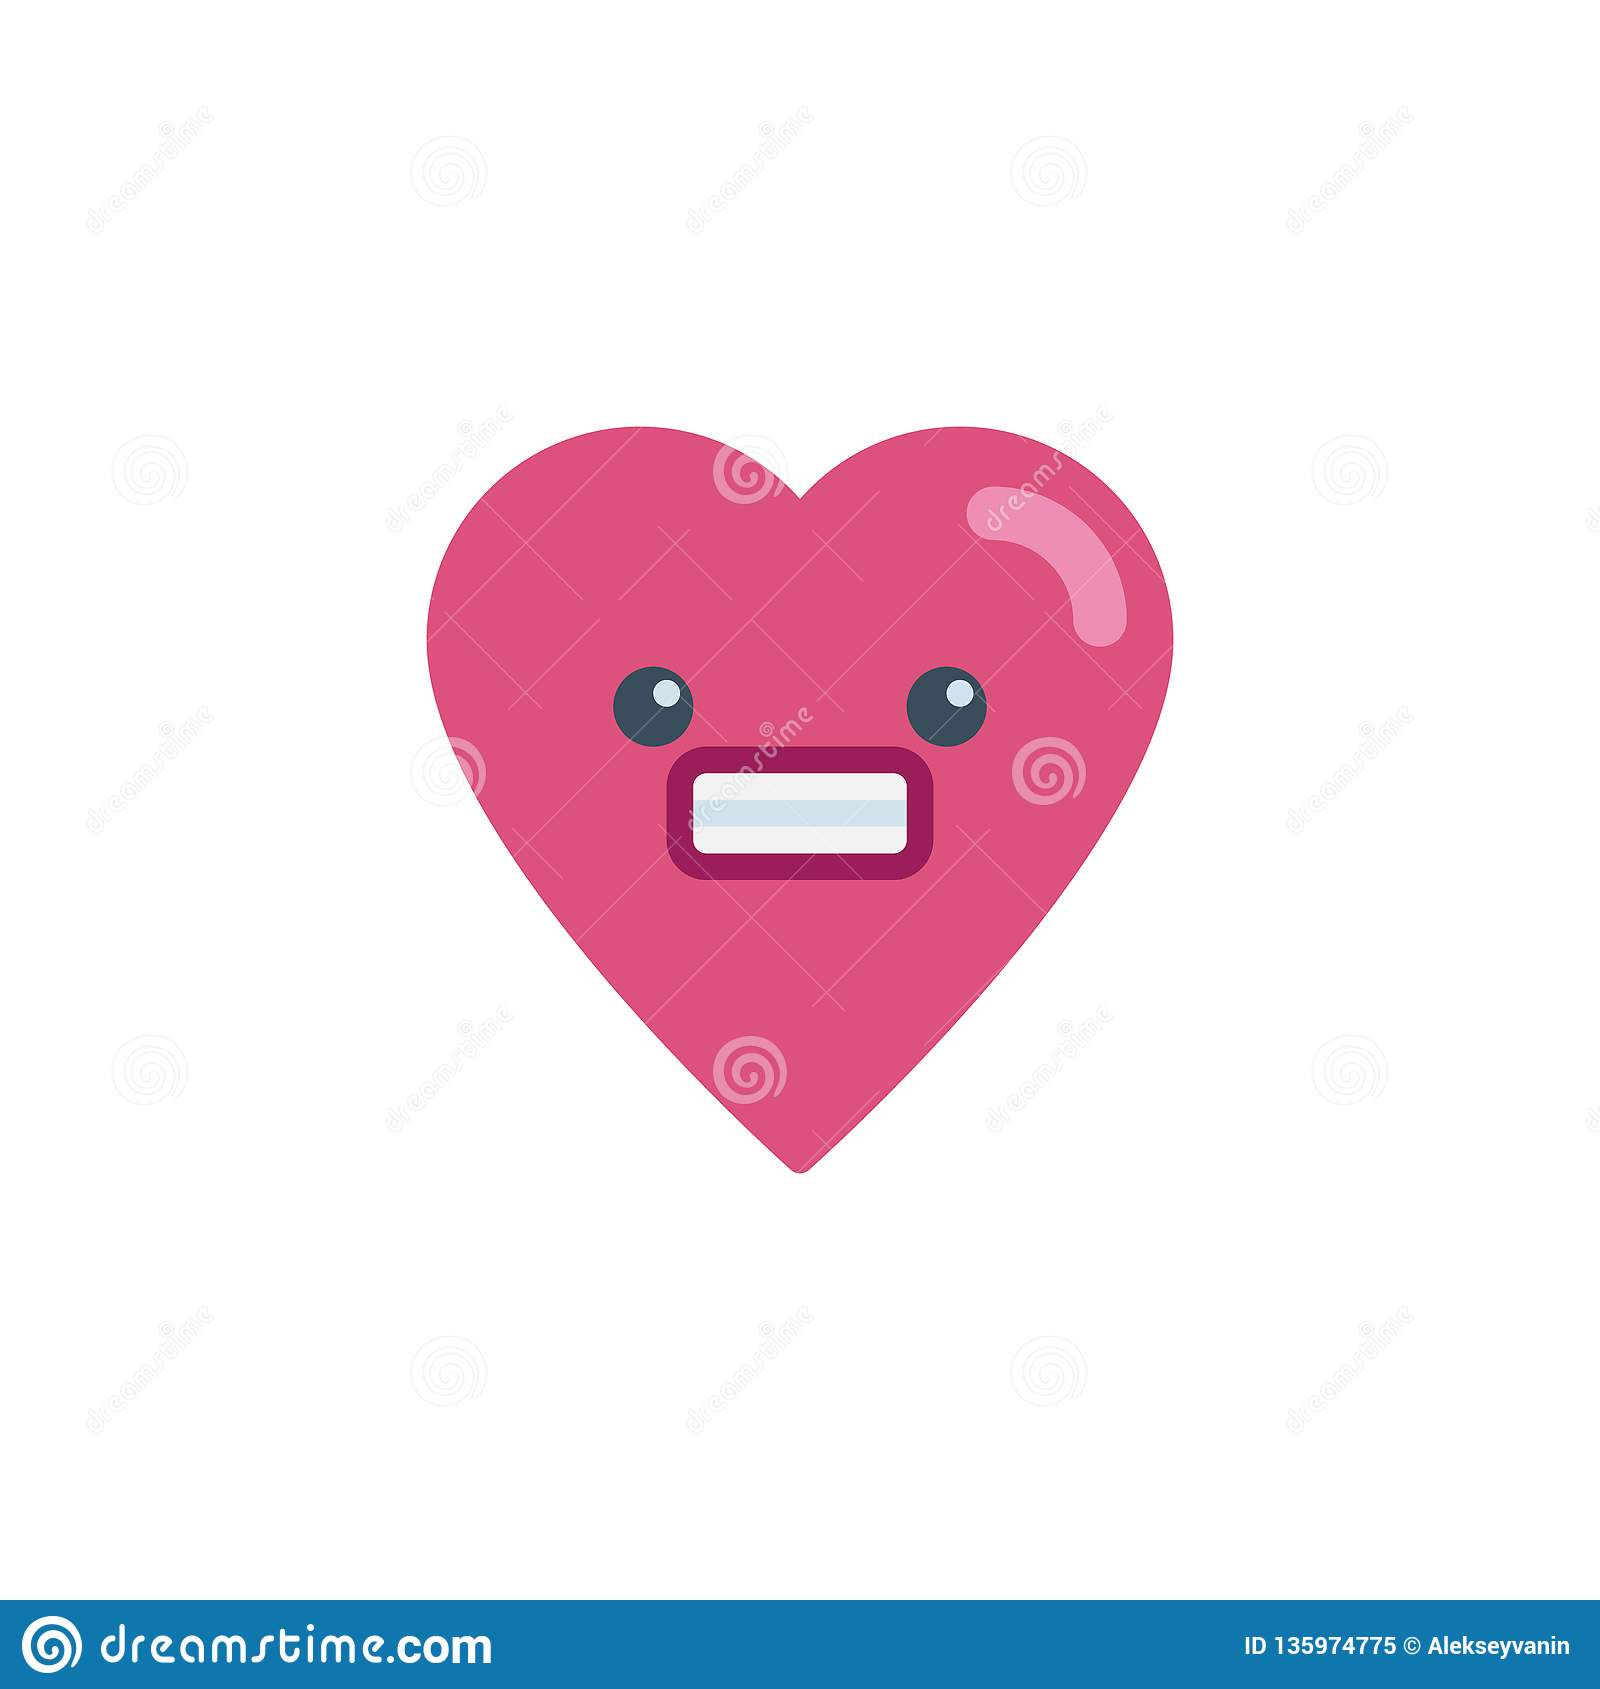 Smiling Heart Face Character Emoji Flat Icon Stock Vector